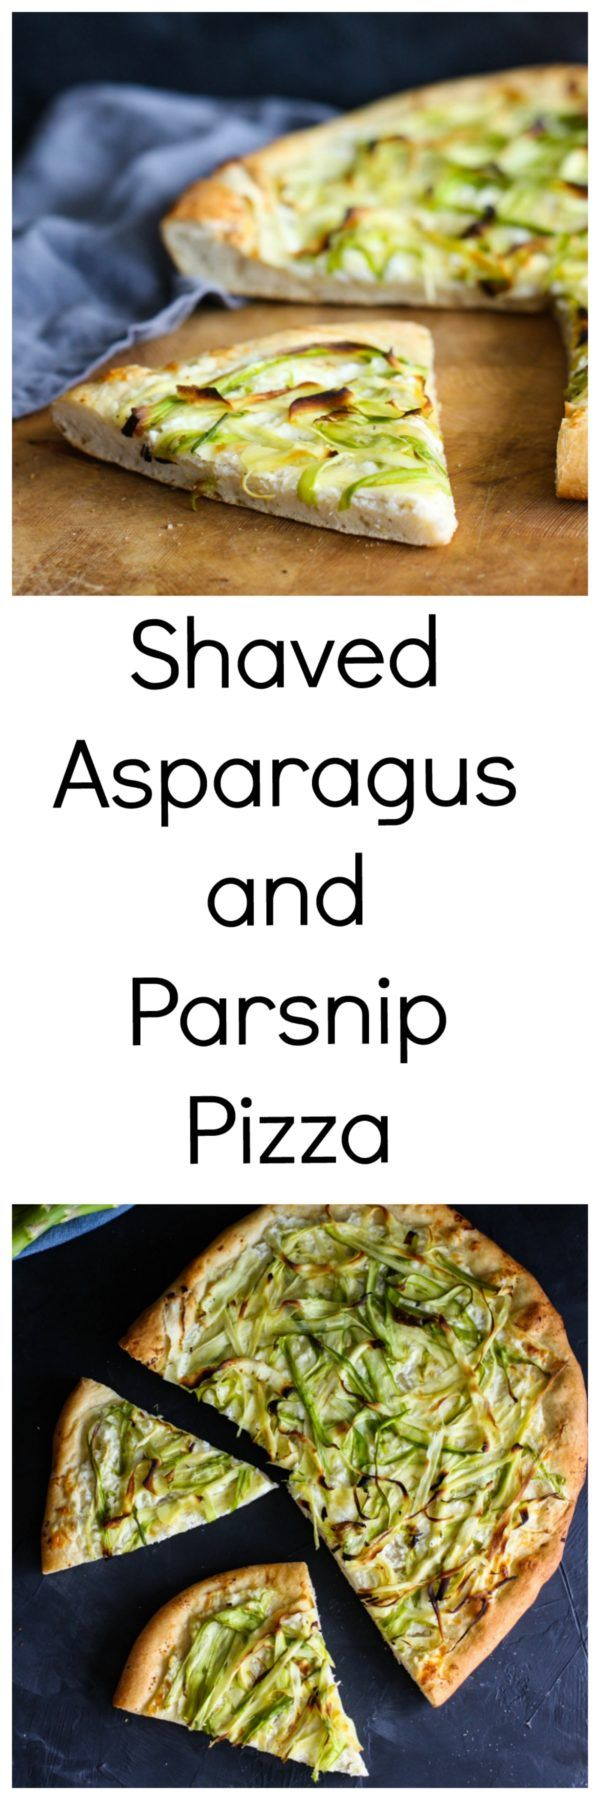 Shaved Asparagus and Parsnip Pizza